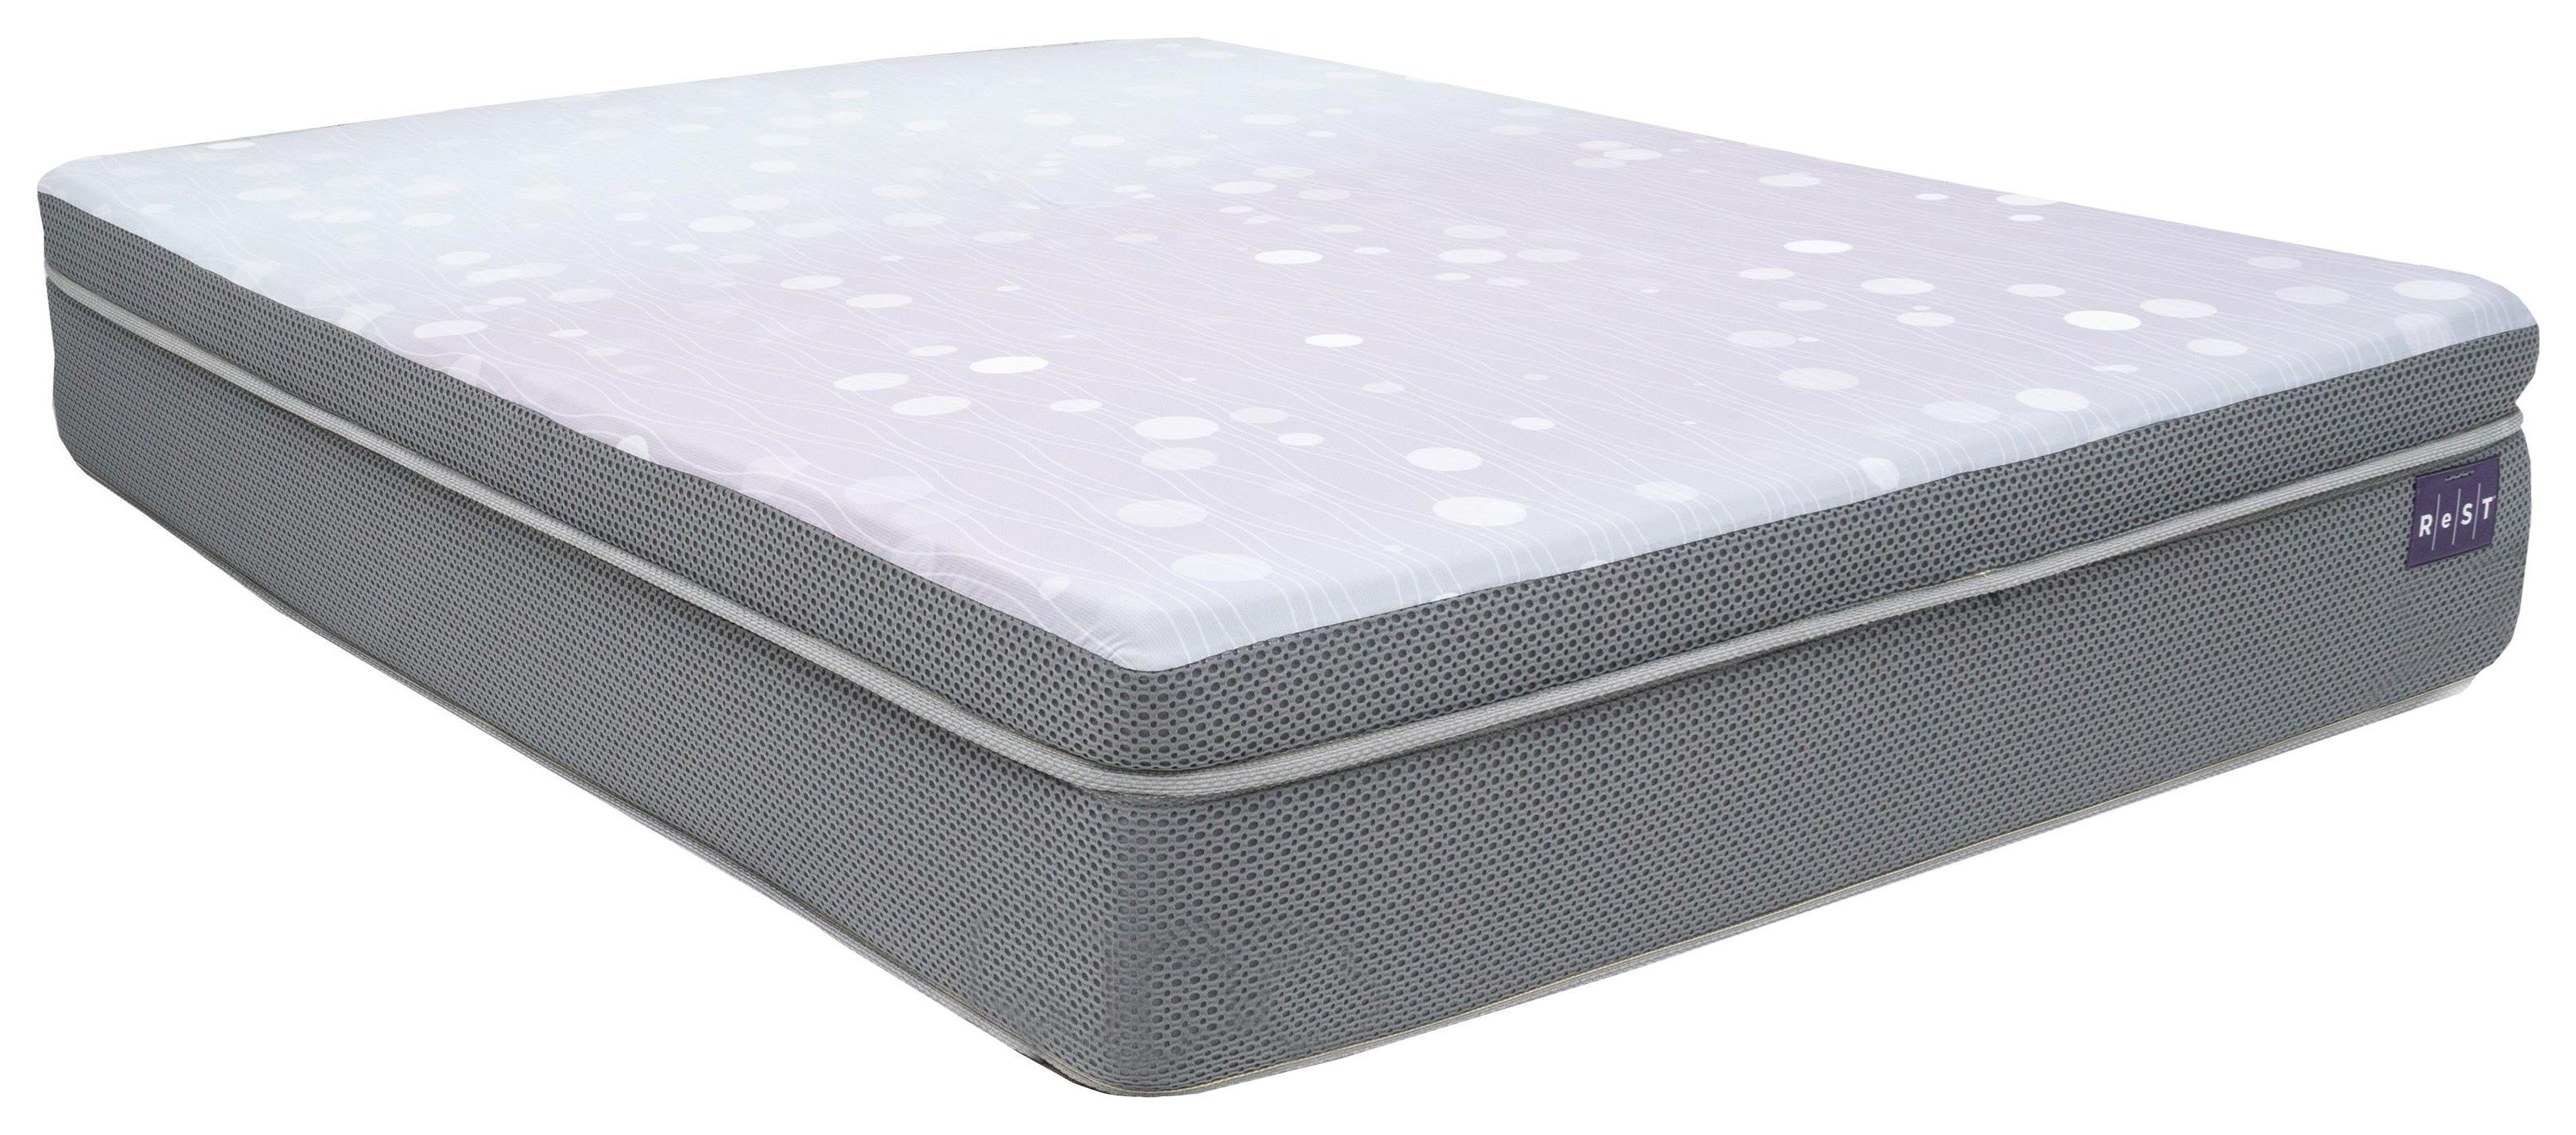 """ReST Bed Twin XL 13"""" ReST Bed™ Mattress by ReST at Ultimate Mattress"""